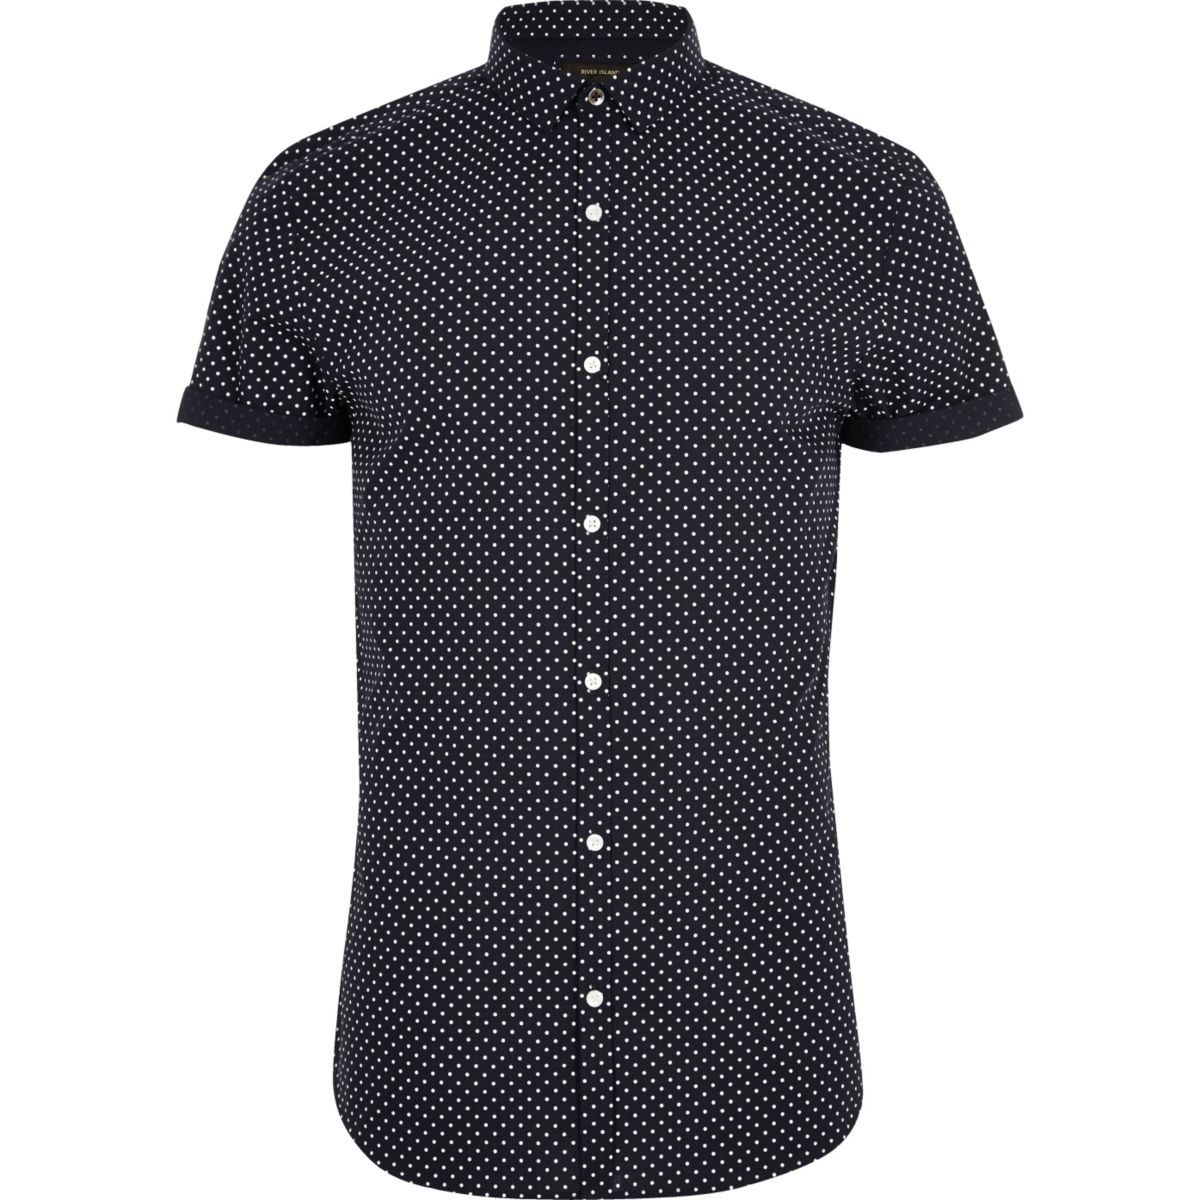 Navy polka dot short sleeve slim fit shirt shirts sale for Mens polka dot shirt short sleeve